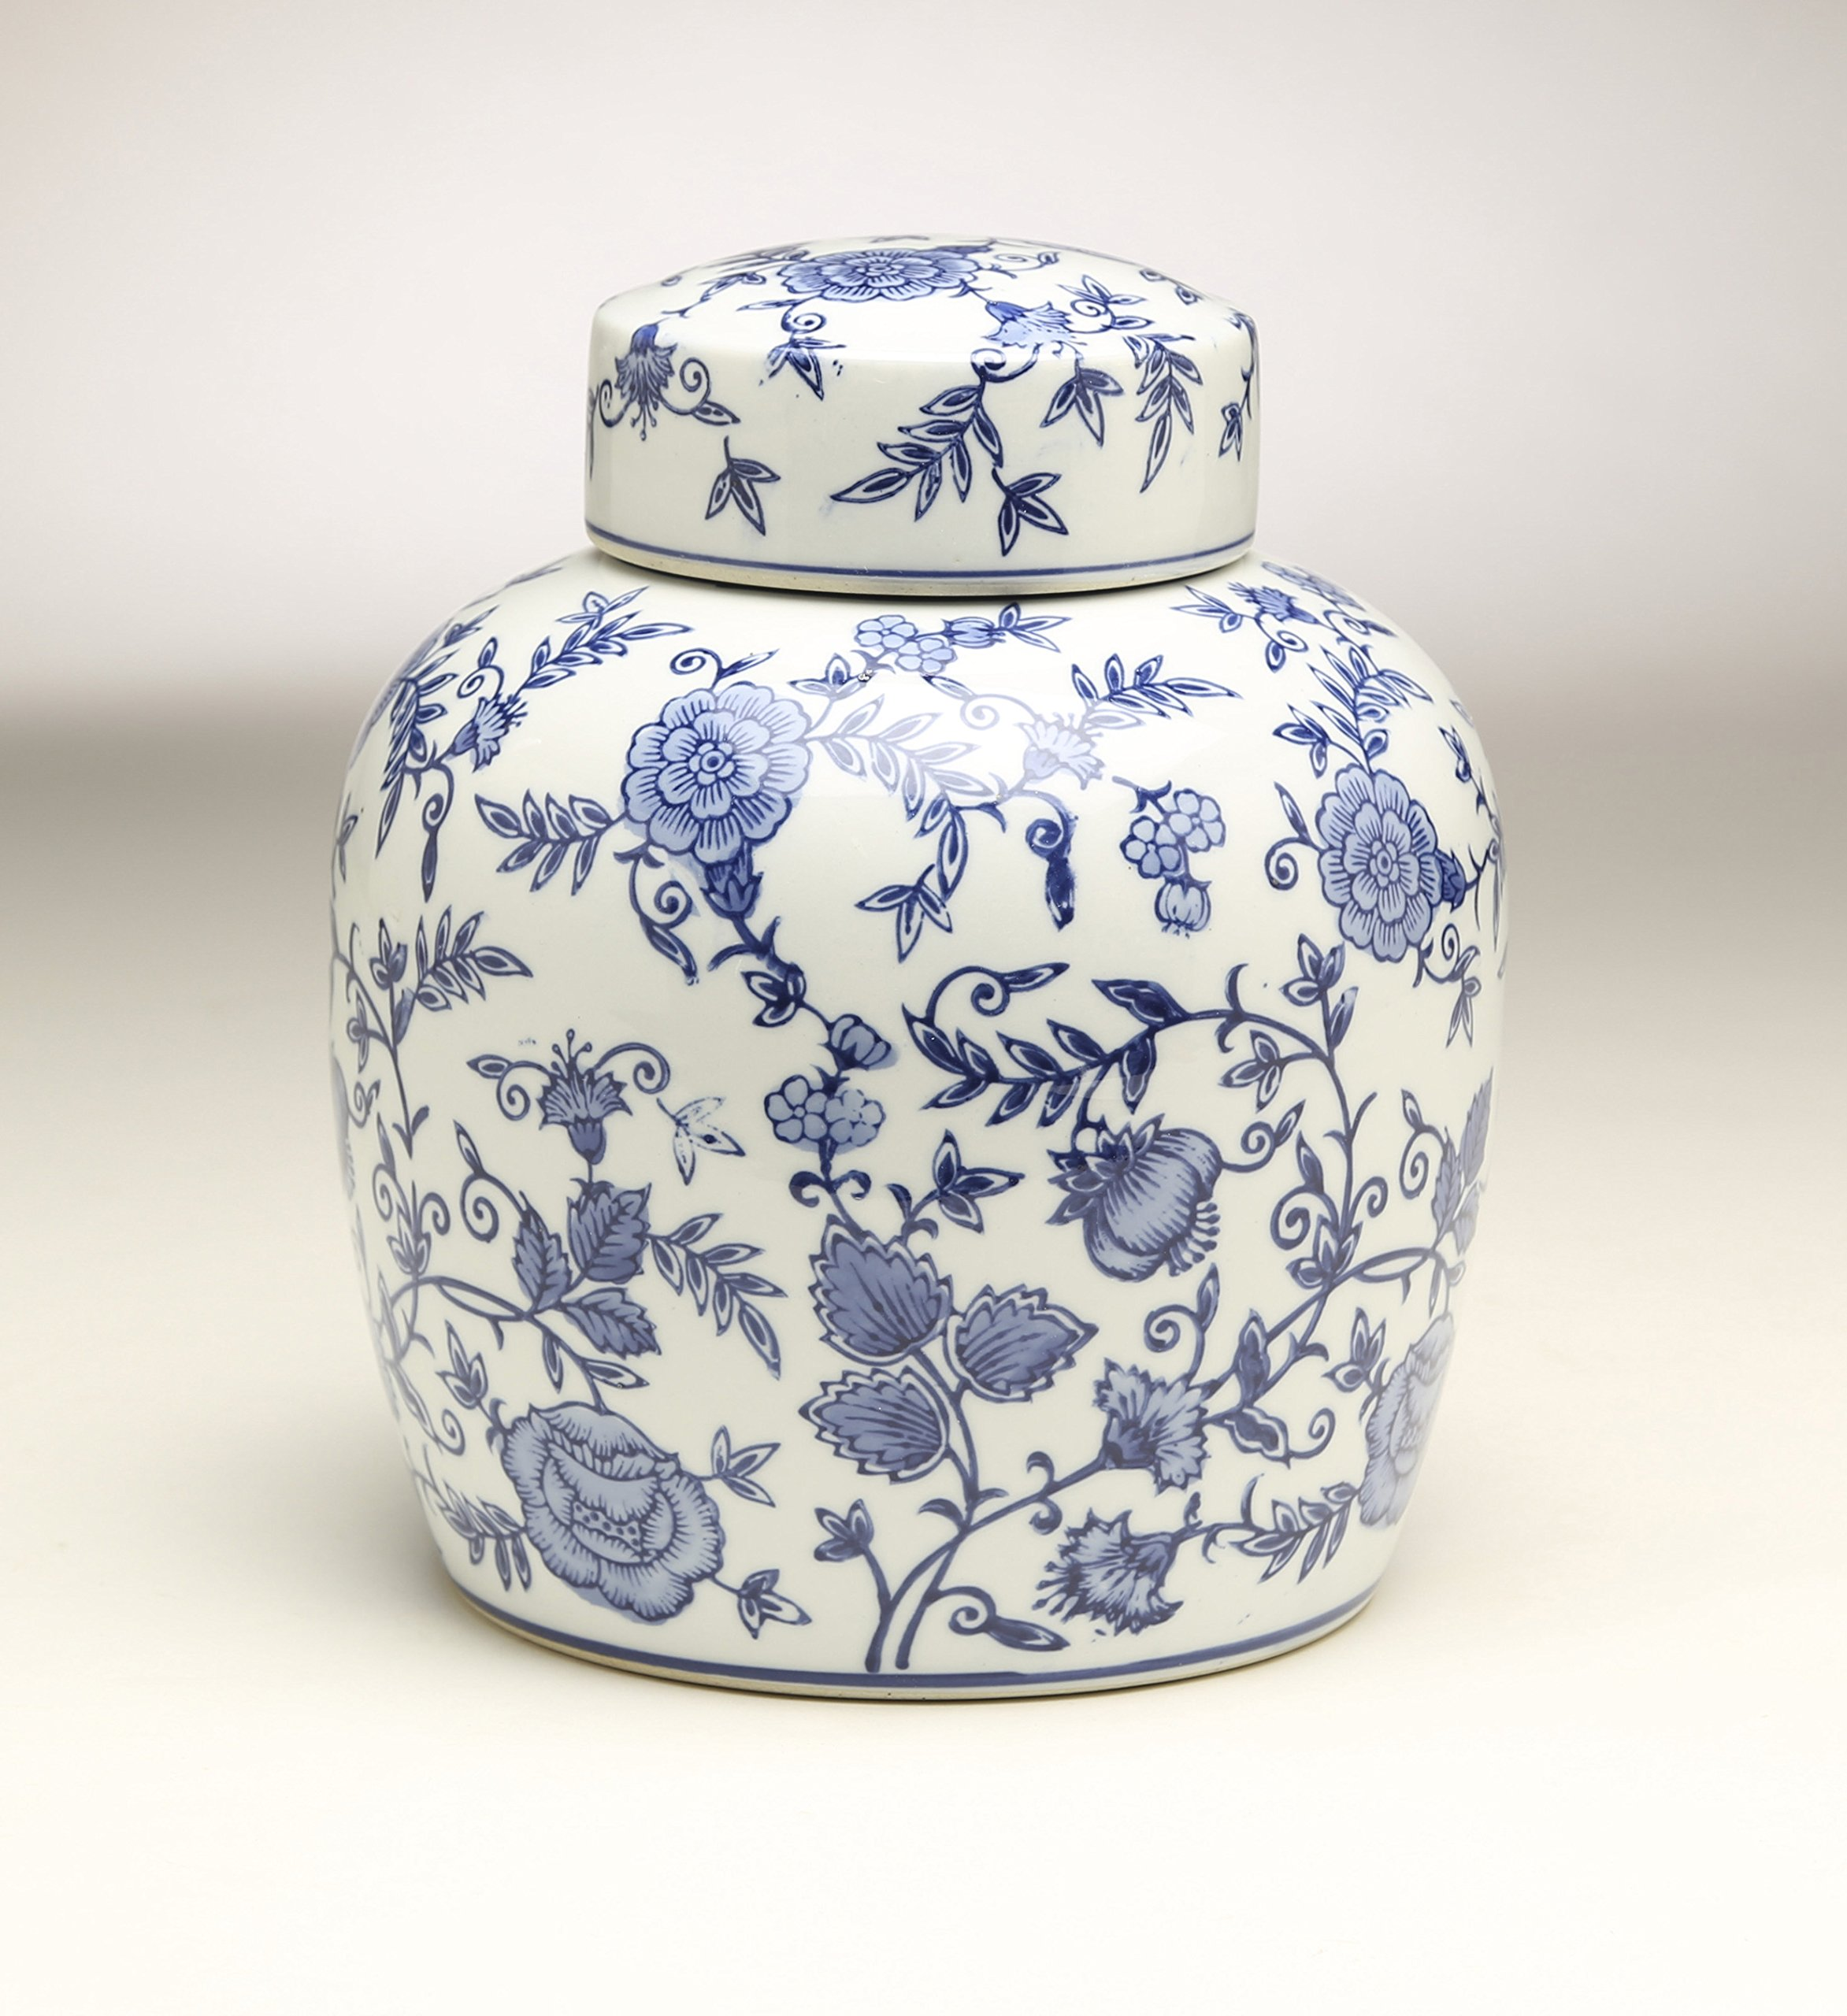 AA Importing 59953 9 Inch Blue & White Ginger Jar